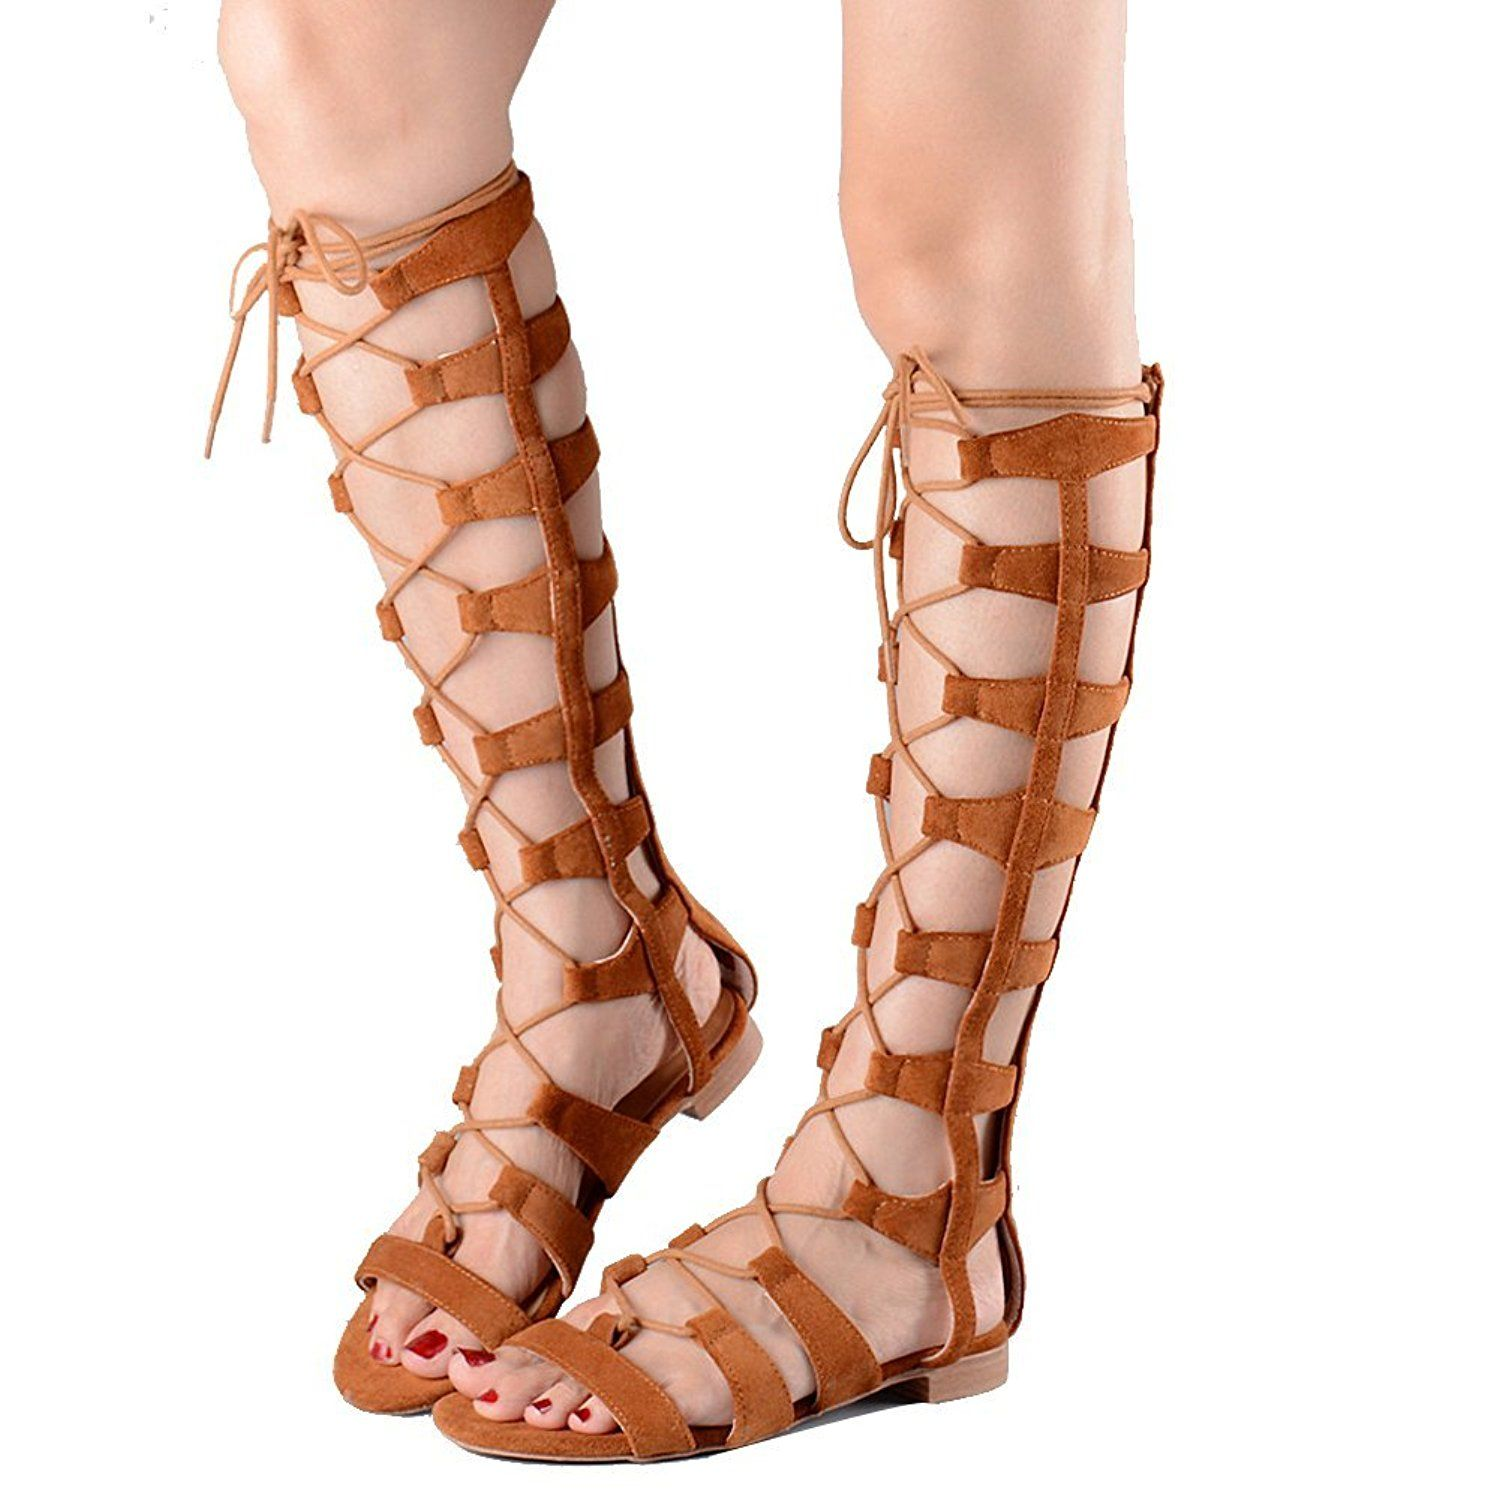 Womens sandals that zip up the back - Vivikiki Women S Open Toe Lace Up Gladiator Knee High Back Zip Flat Sandals Save